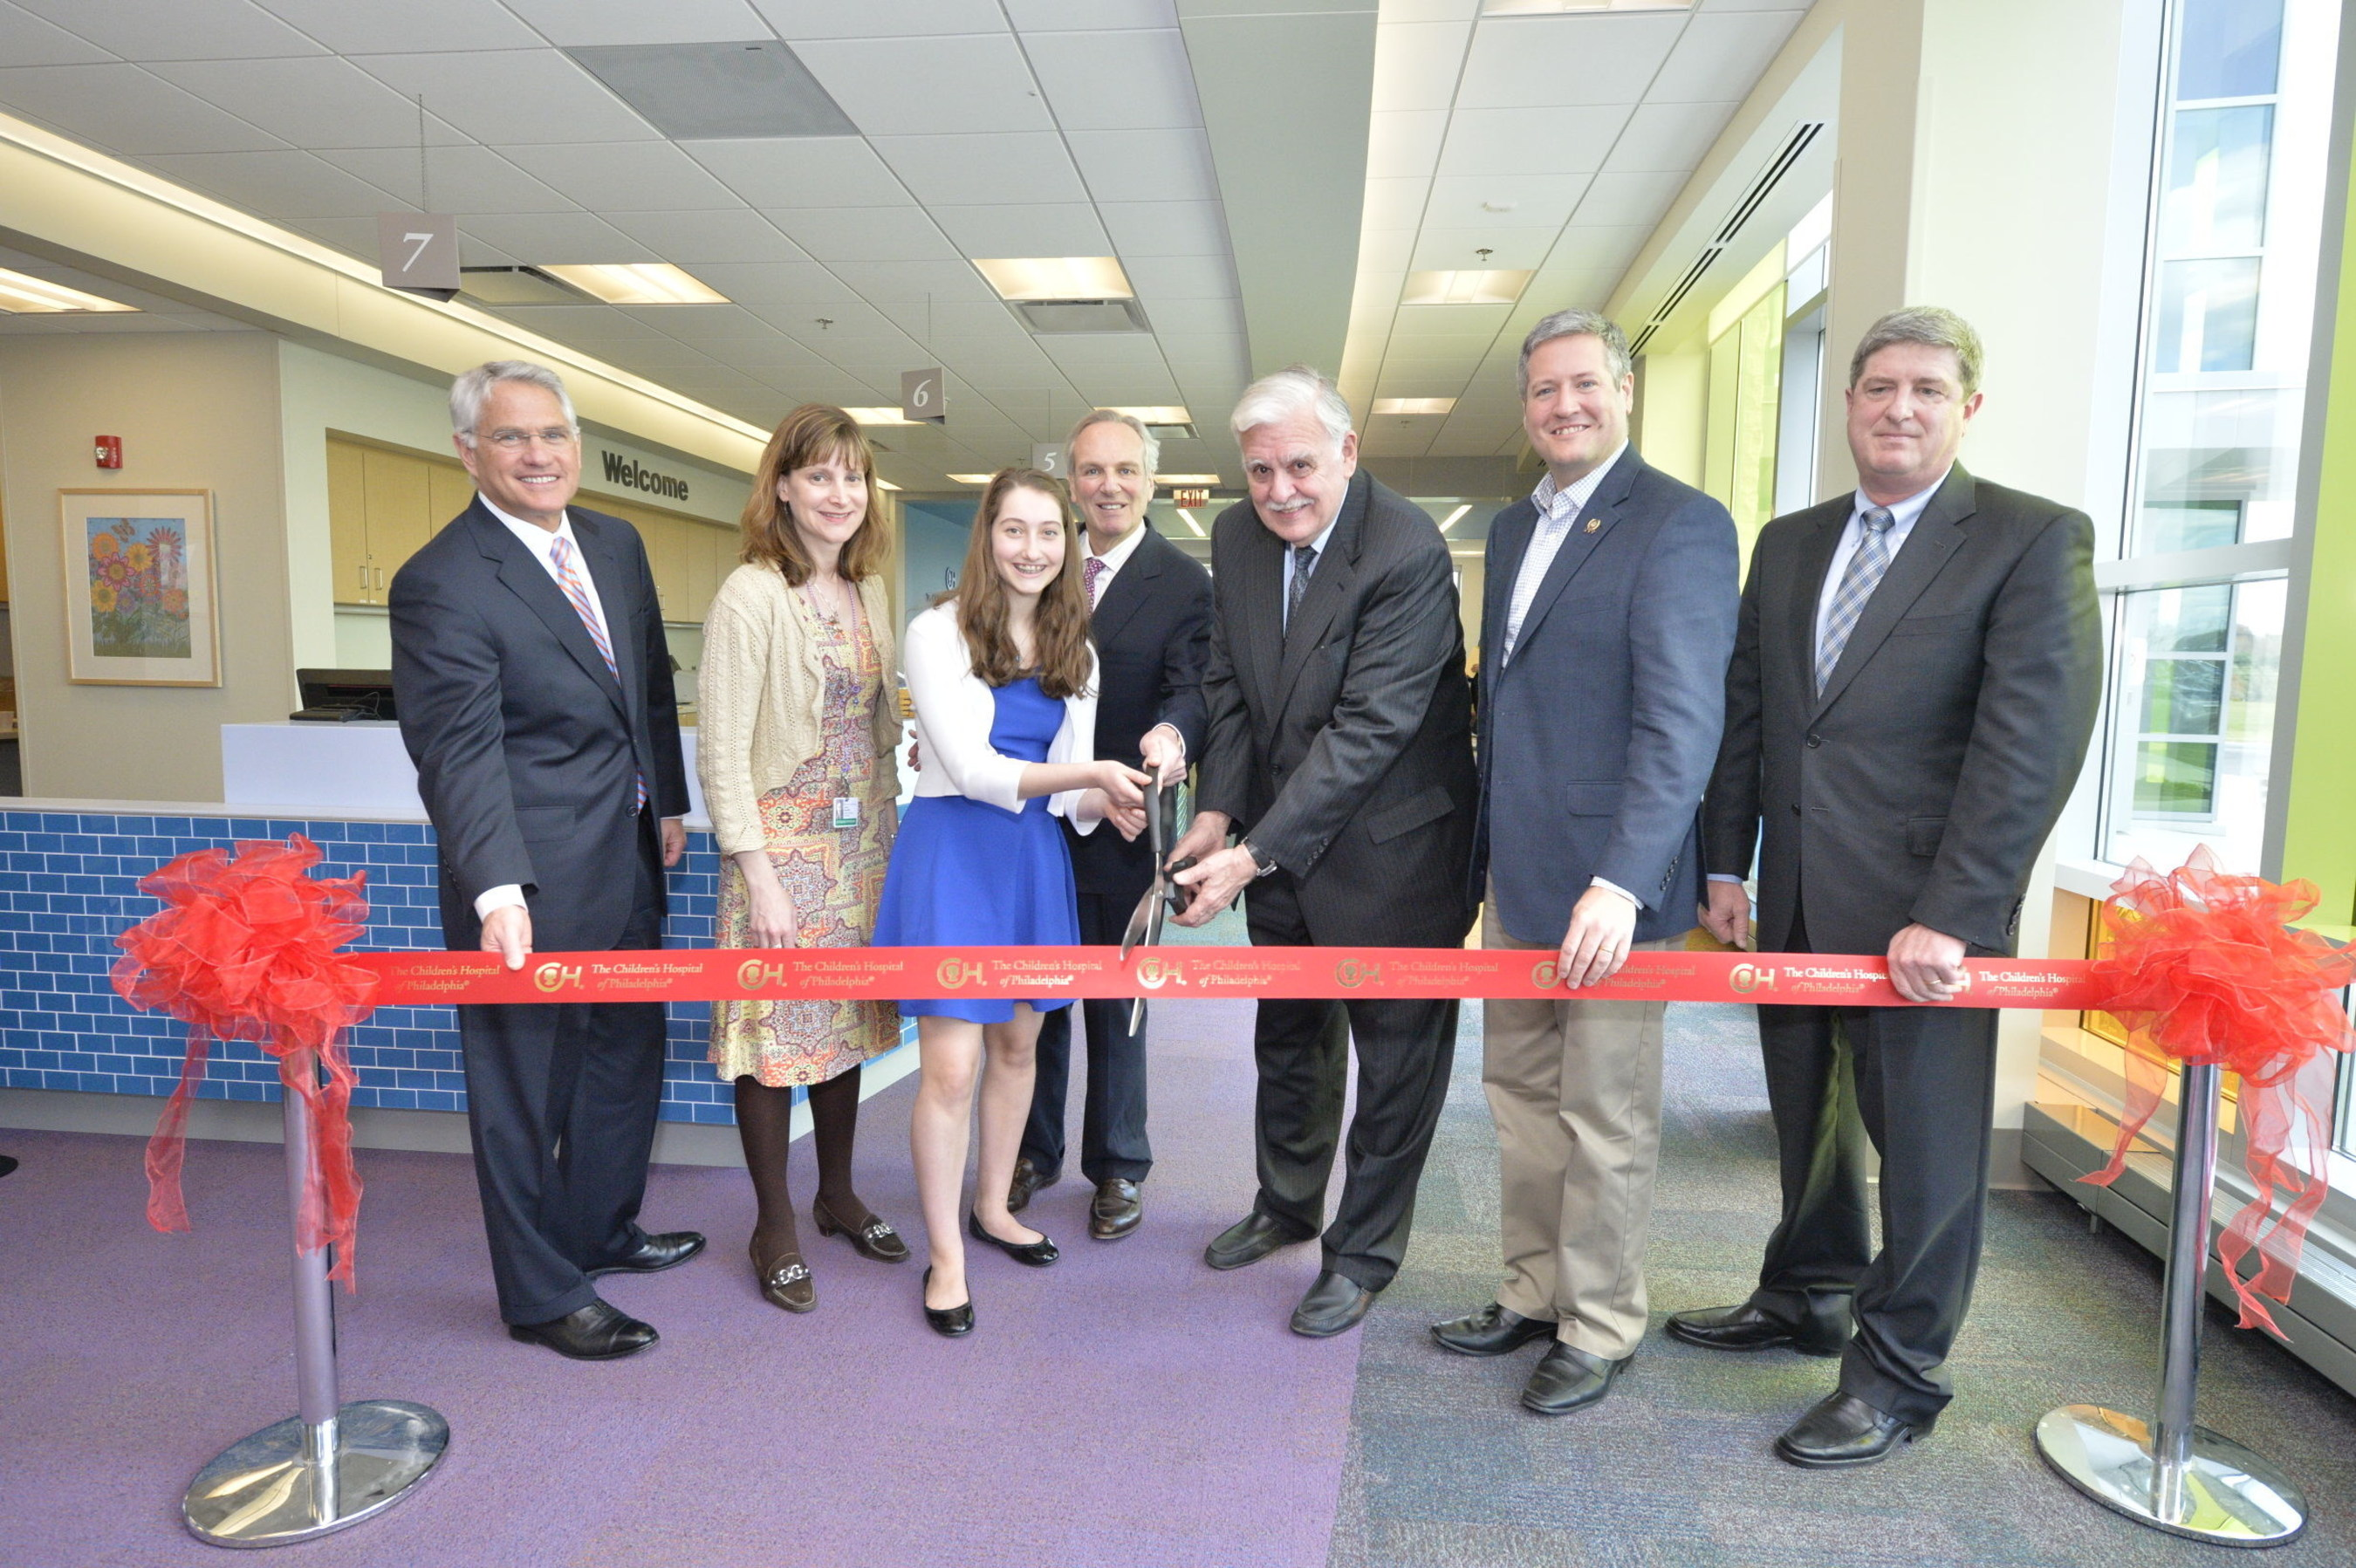 The children s hospital of philadelphia chop today celebrated the grand opening of a 25 000